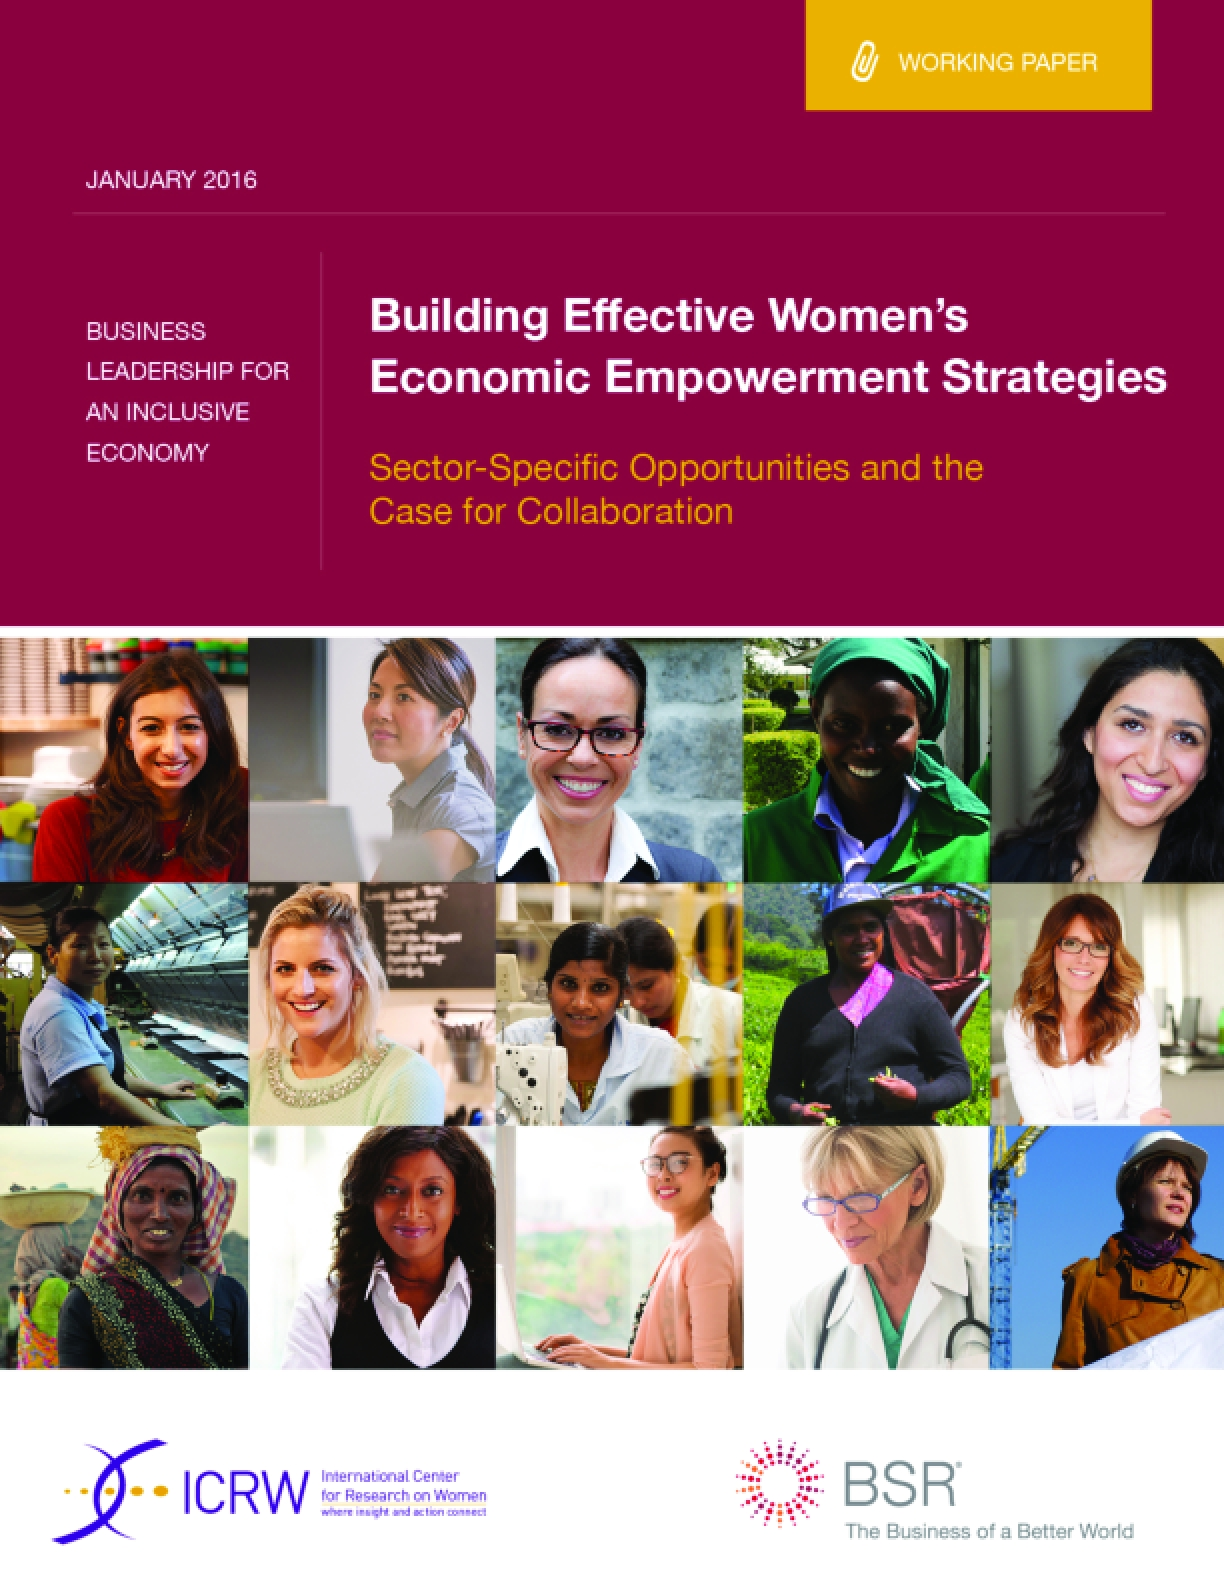 Building Effective Women's Economic Empowerment Strategies